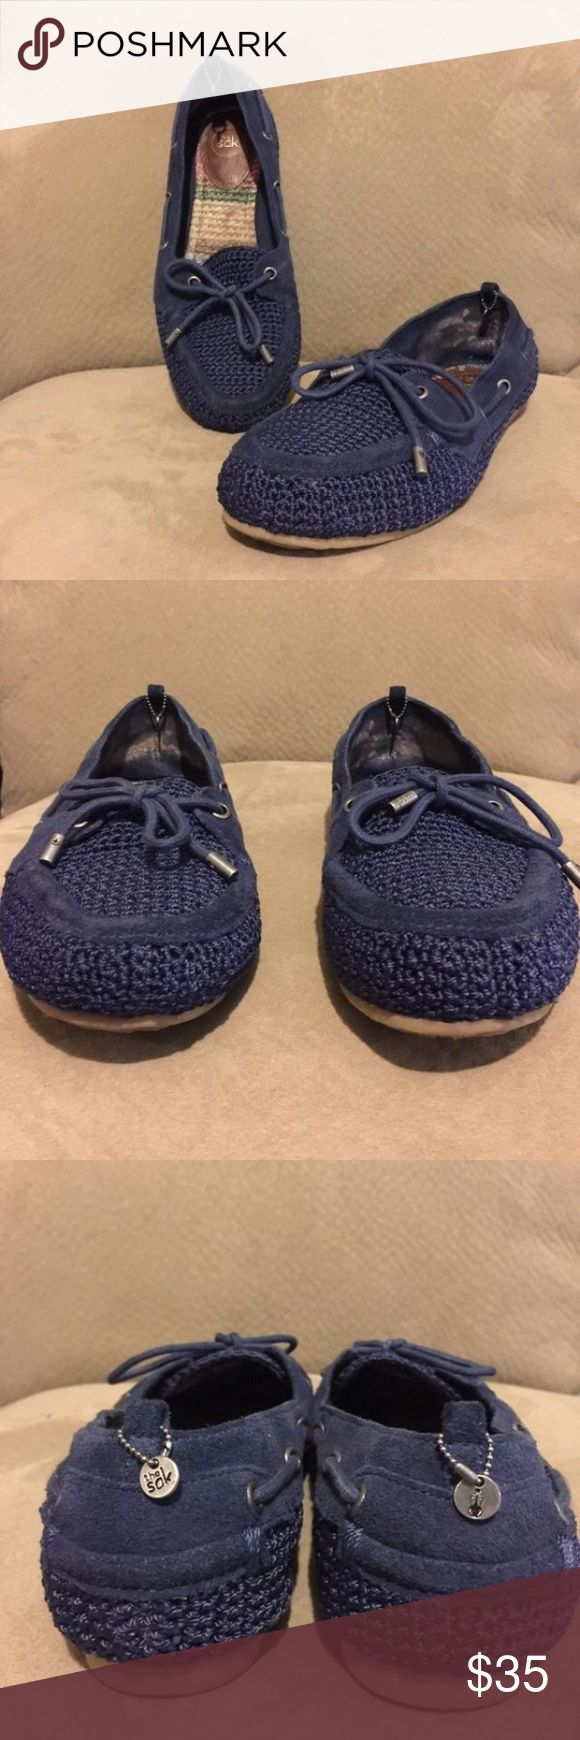 The sak crochet navy flat shoe 6.5 No rips, stains or odor...excellent condition...hangtags on back of shoe, interior lining shows rub wear from use The Sak Shoes Flats & Loafers